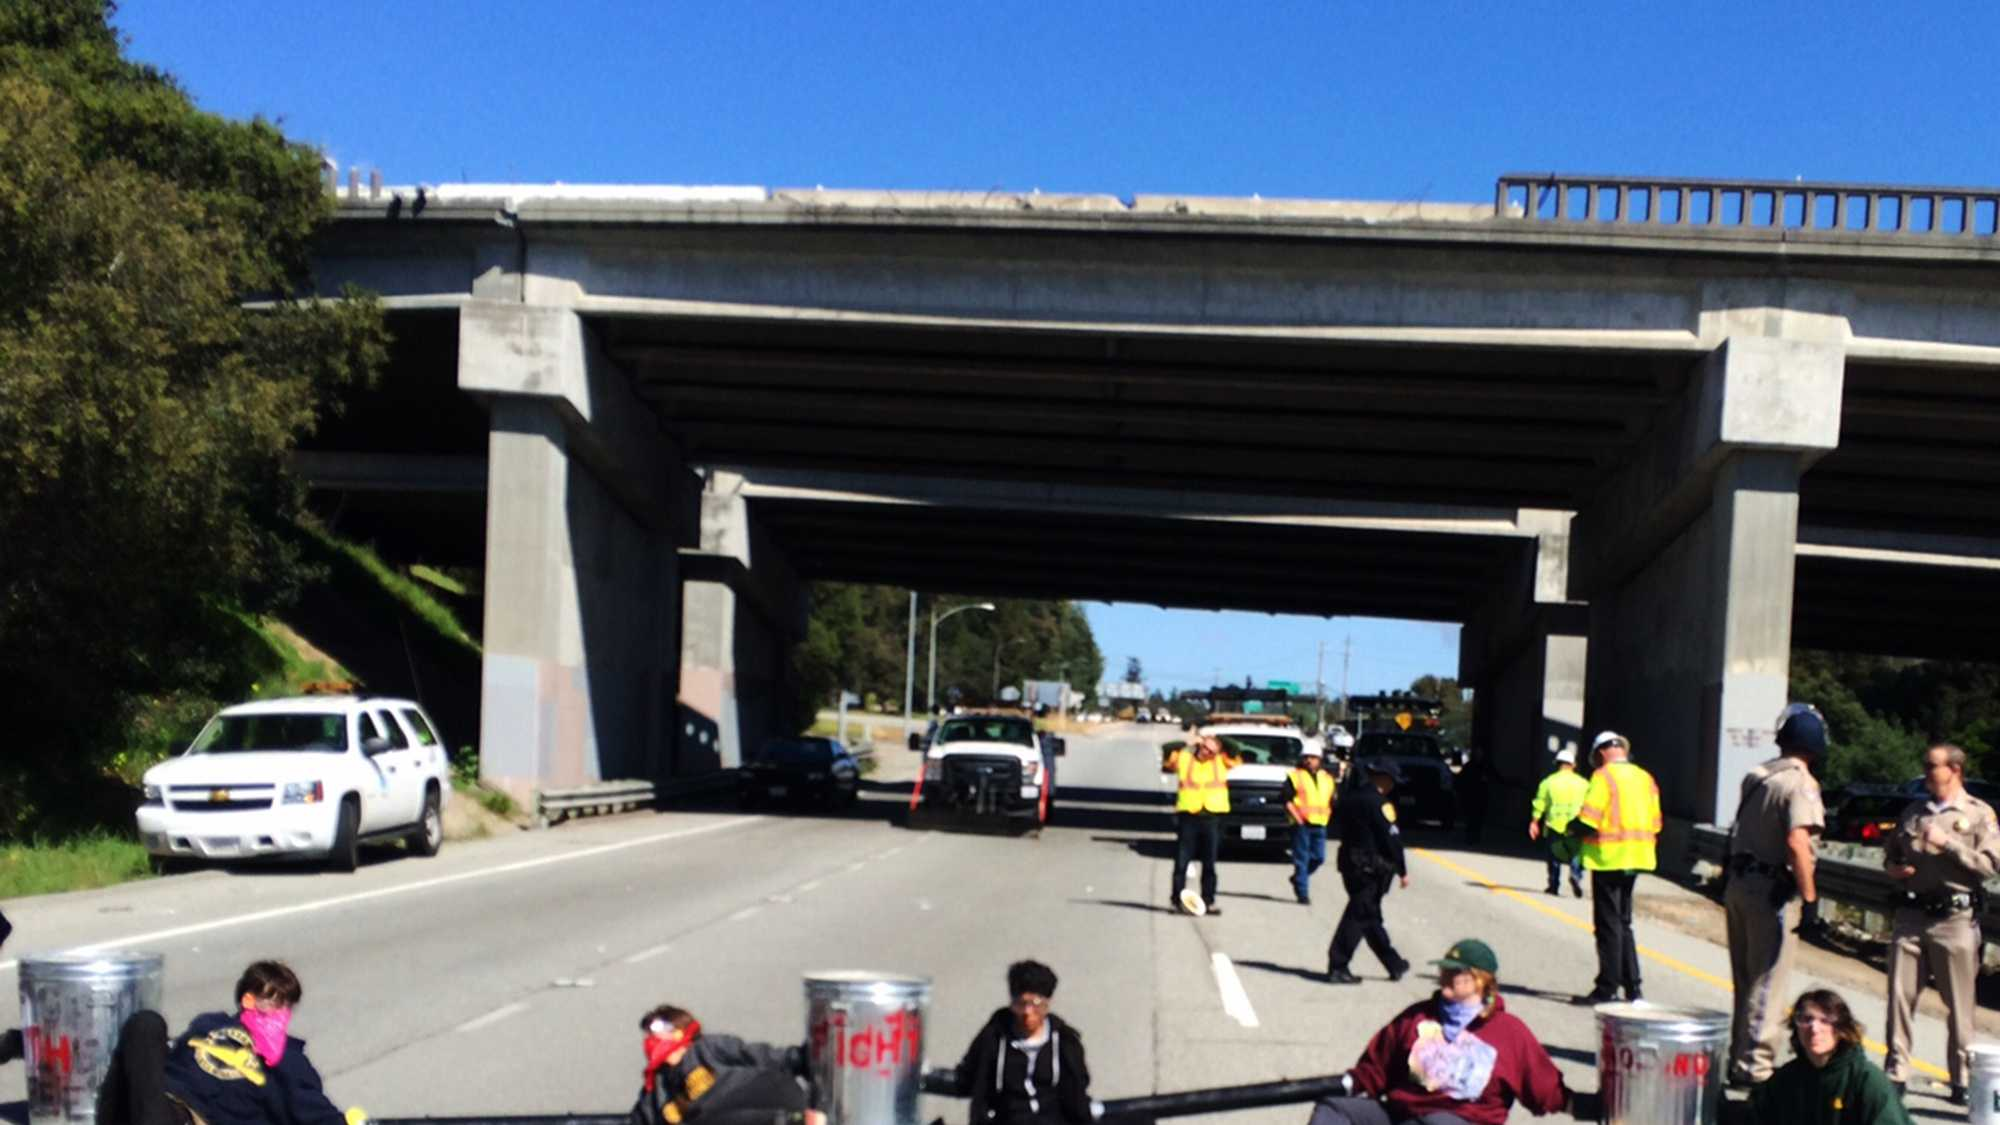 A human blockade with cement-filled trash cans was created on Highway 1 in Santa Cruz. (March 3, 2015)